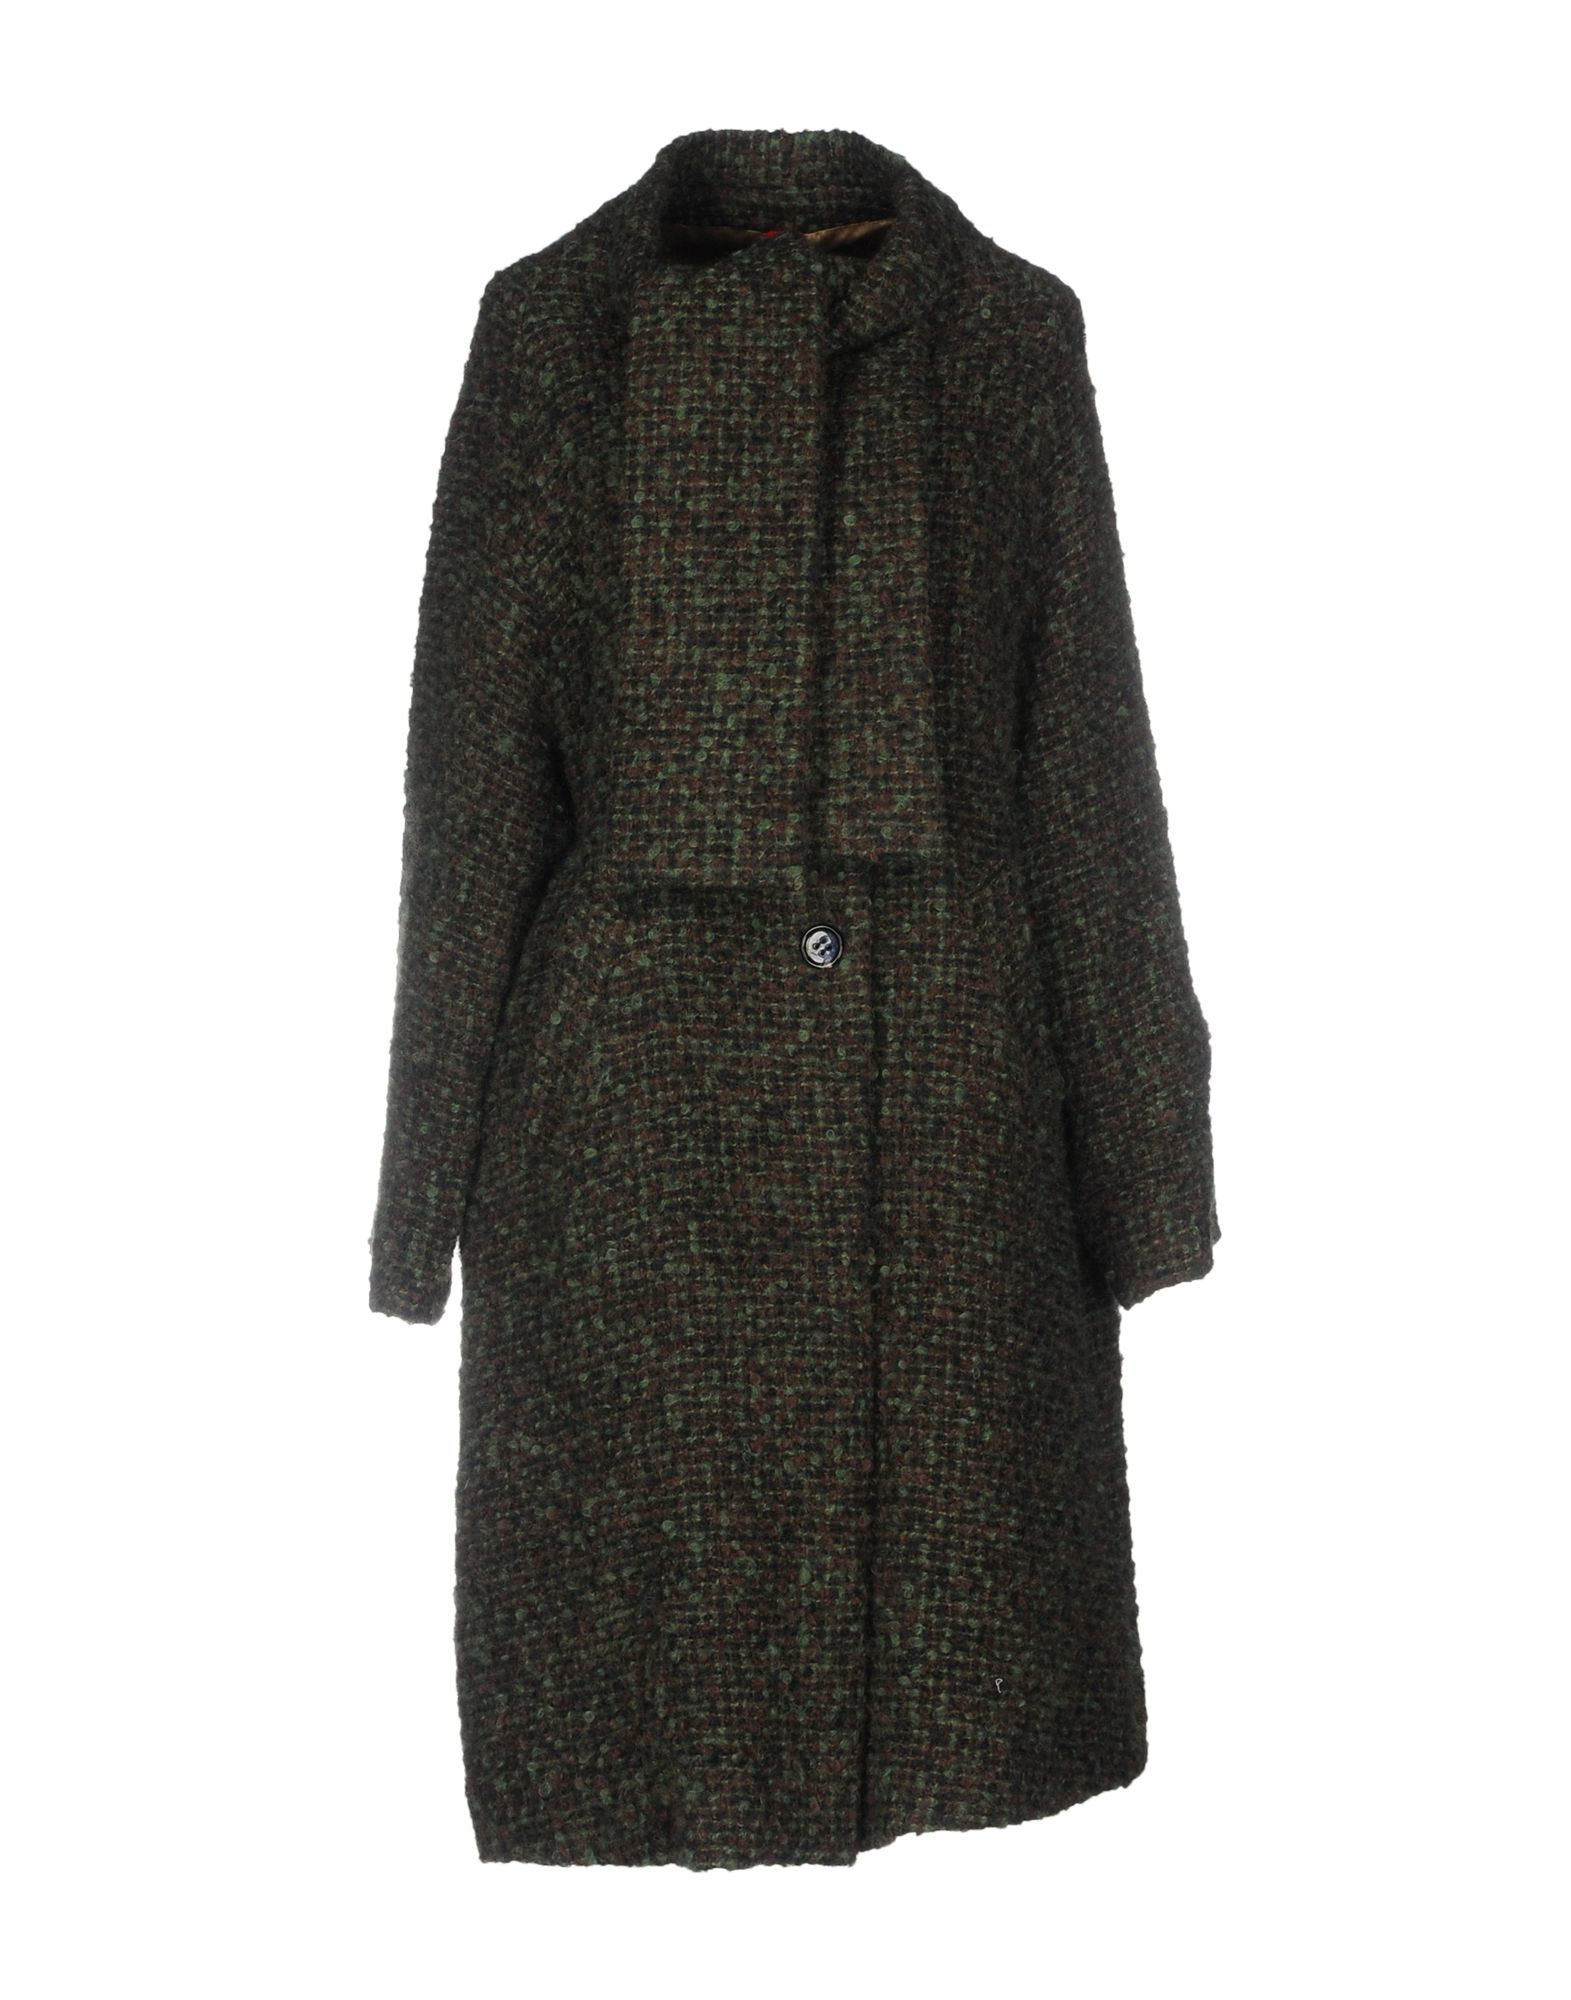 Cappotto Femme By Michele Rossi Donna - Acquista online su 3YIIJt3Dyy